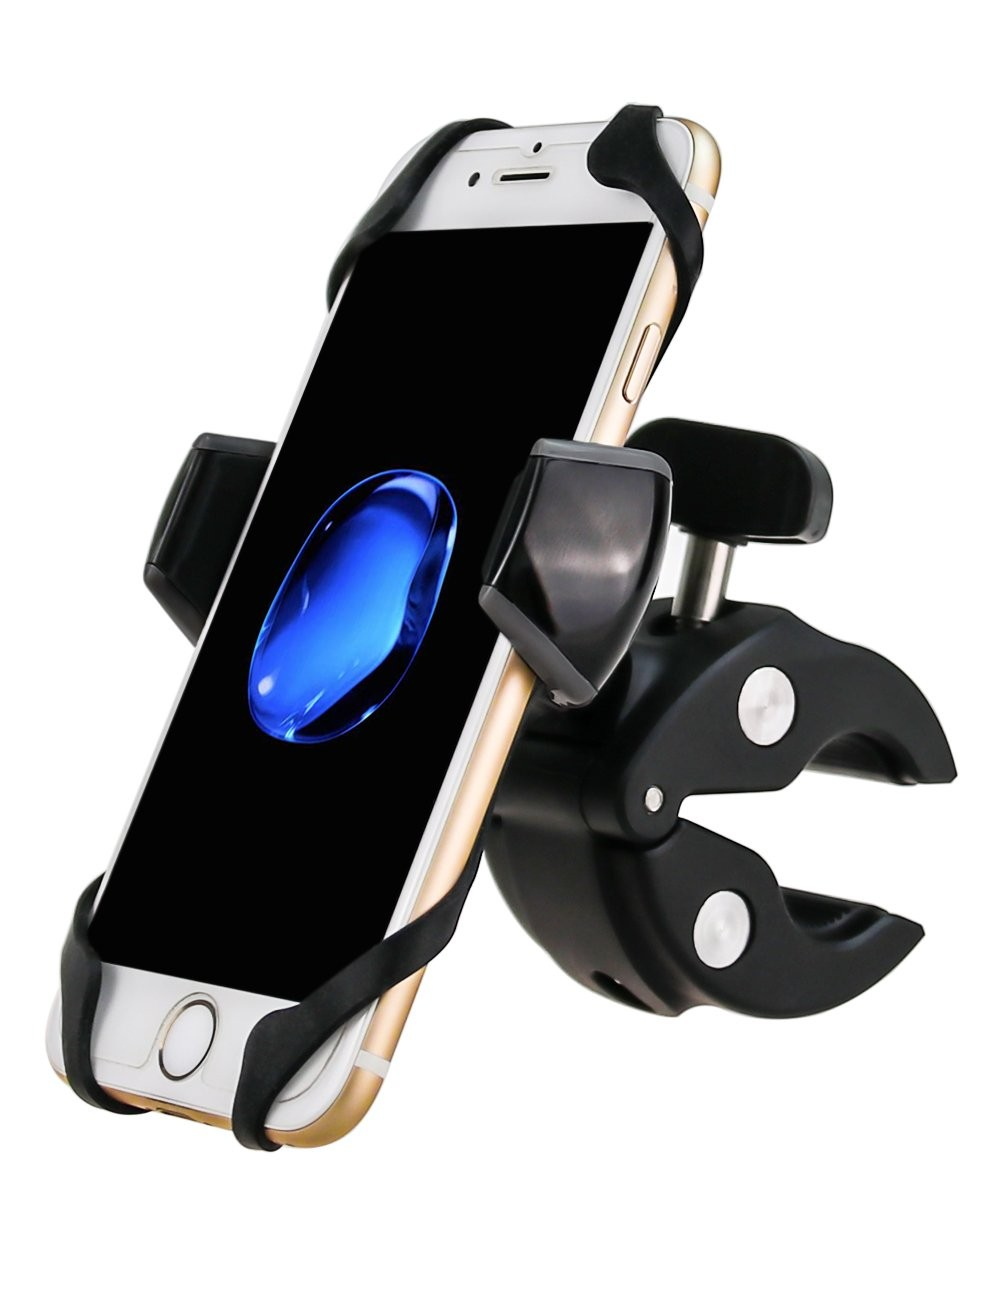 Bike Mount Universal Bicycle Cell Phone Holder Rack Handlebar &amp; <strong>Motorcycle</strong> Holder Cradle Compatible with All Brand Cellphones